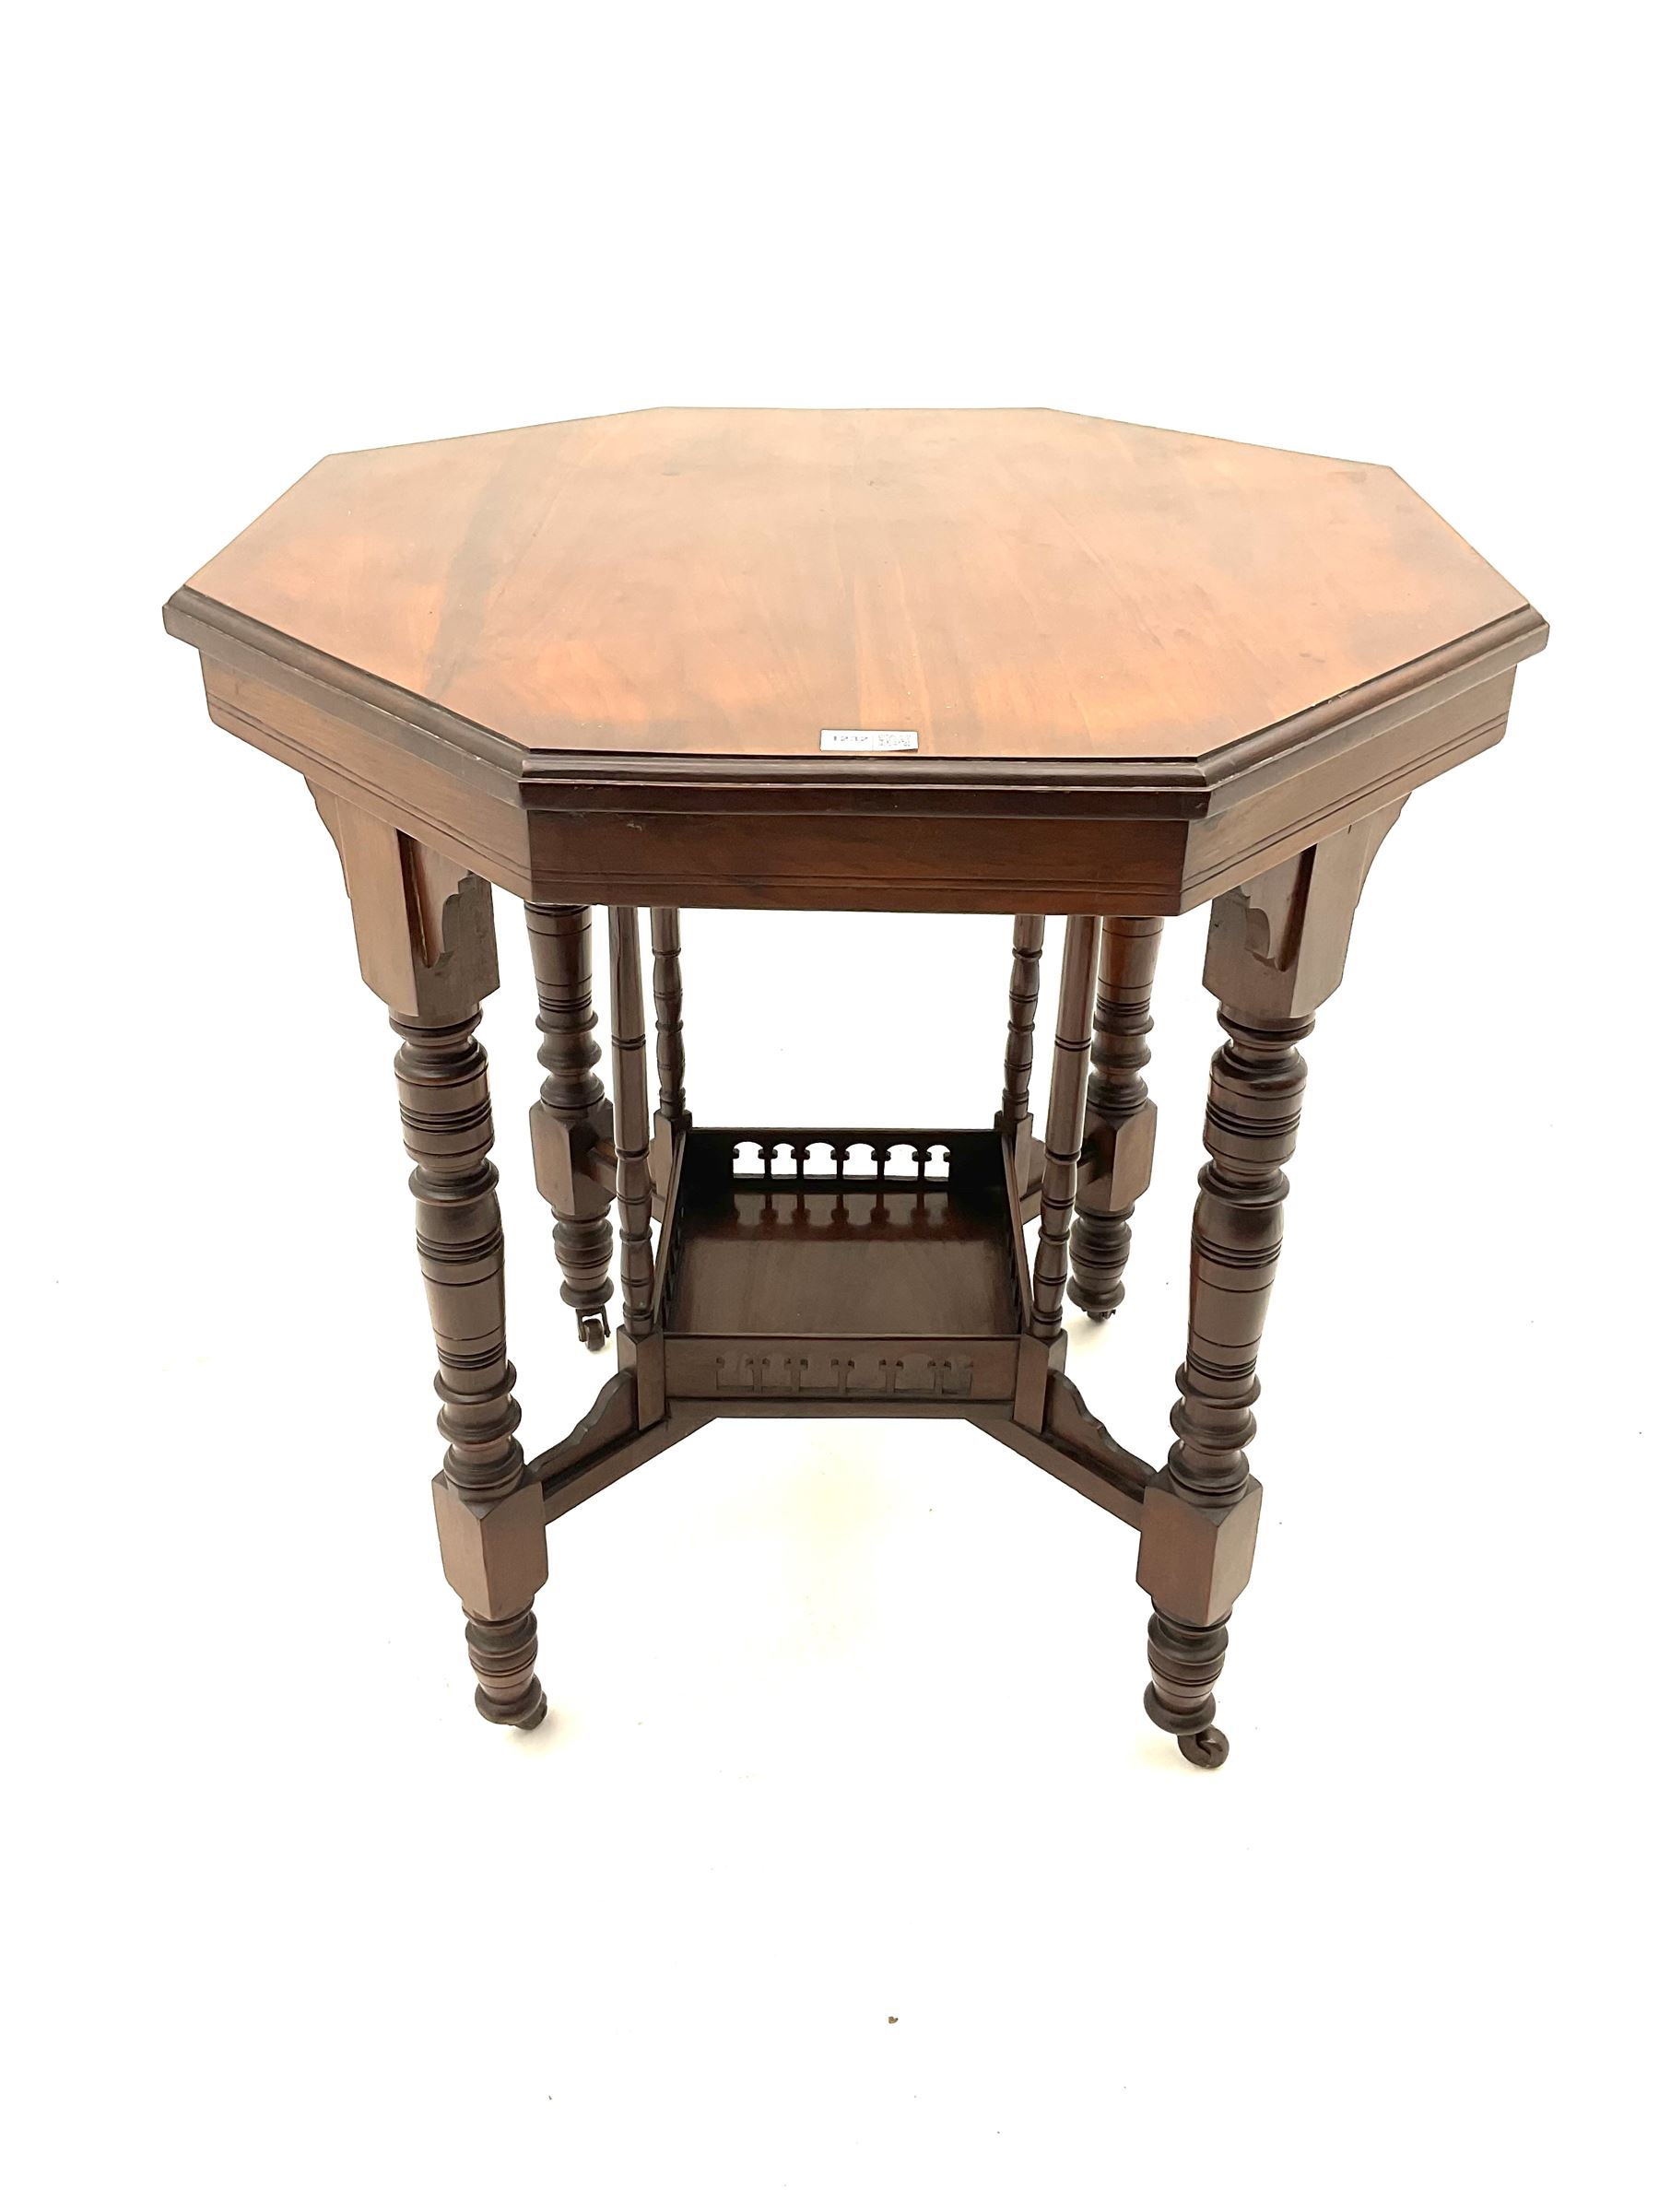 Early 20th century walnut octagonal occasional table - Image 2 of 2